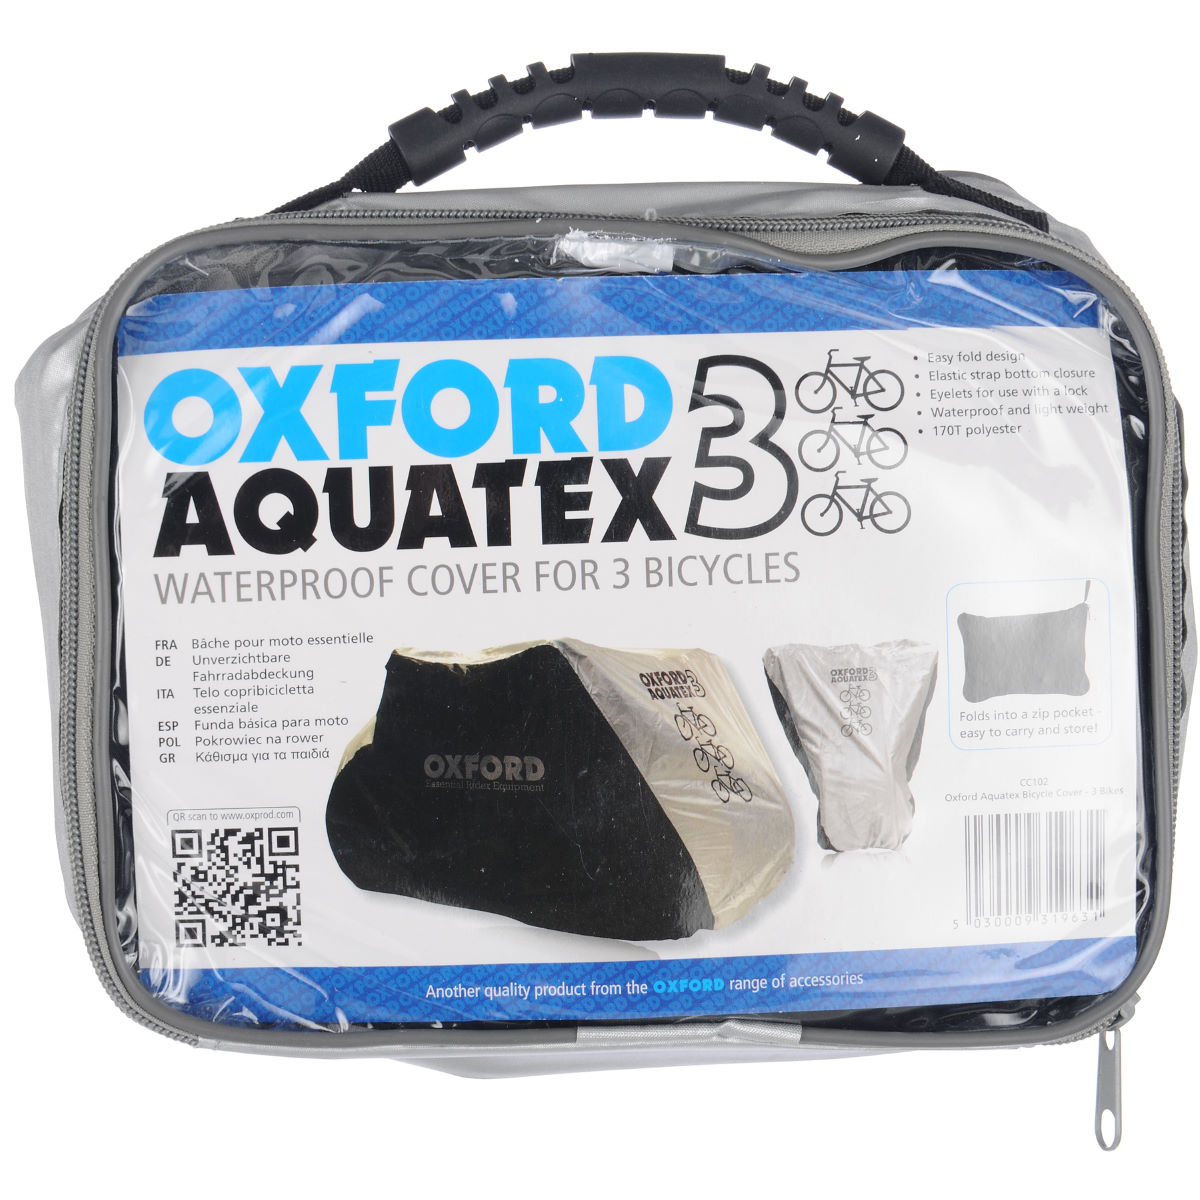 Housse de vélo Oxford Aquatex 3 - 200x105x110cm Black - Silver